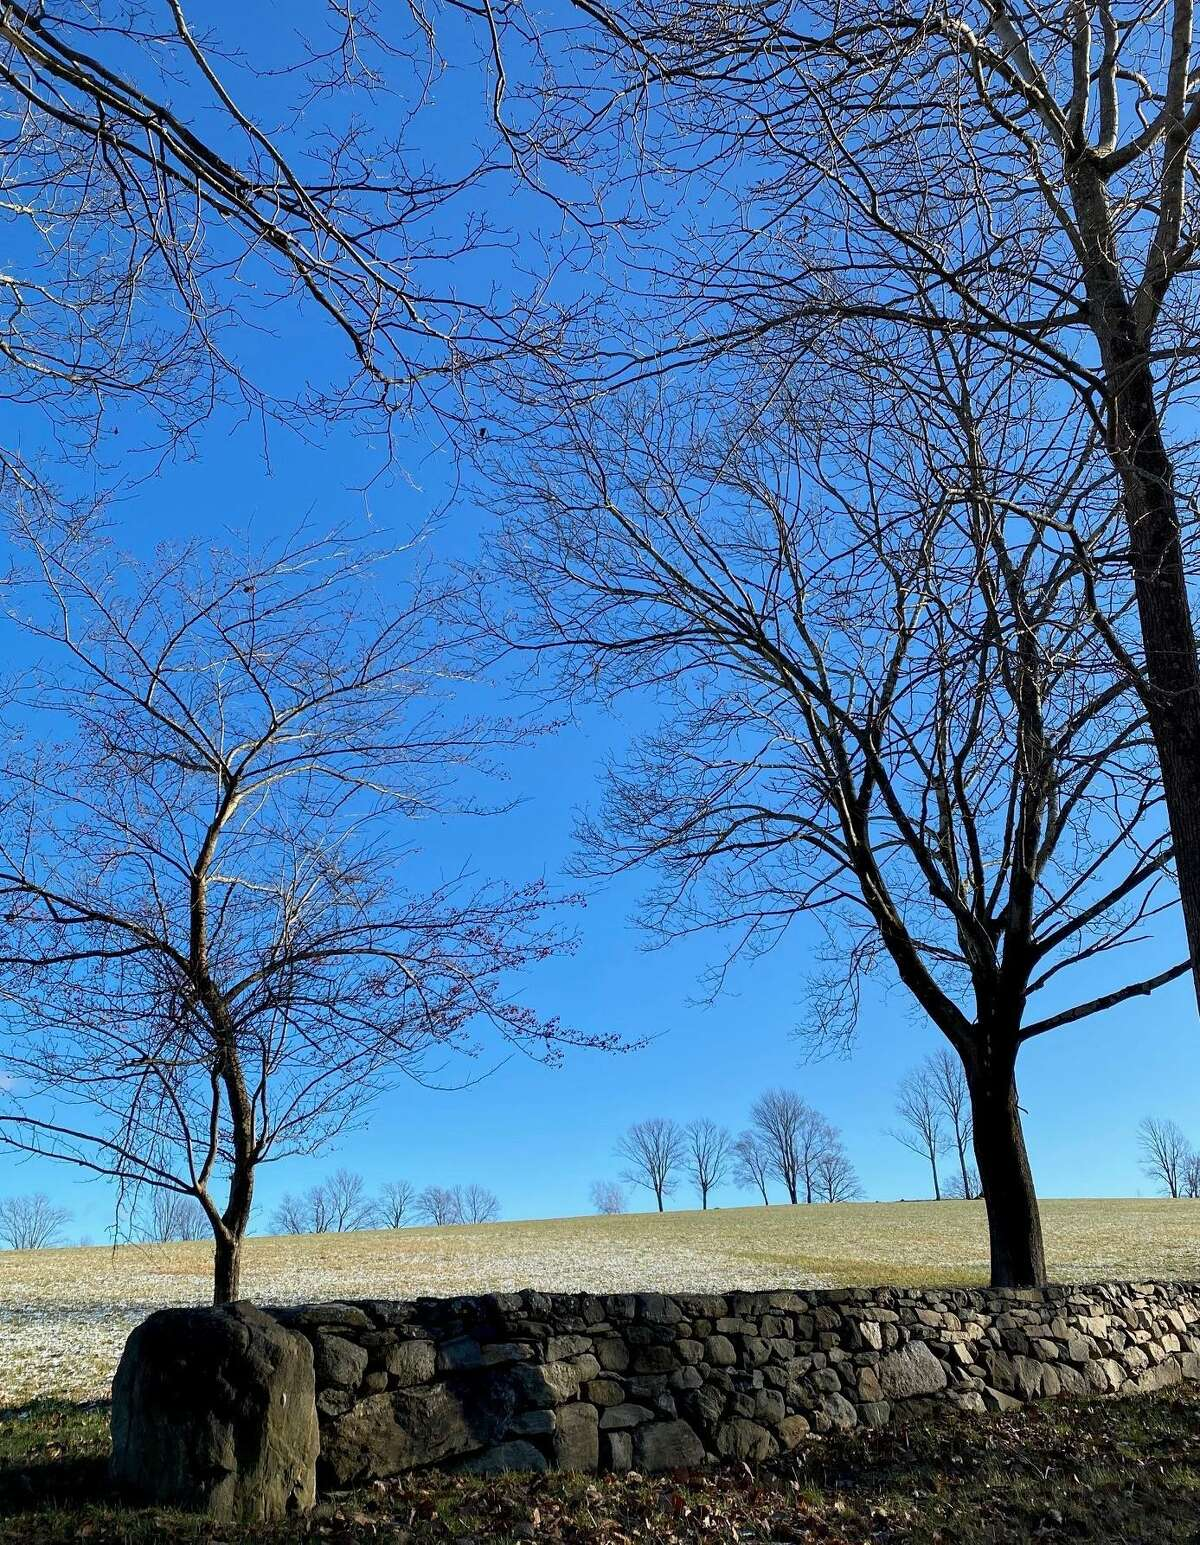 Trees of all shapes and sizes adorn the rolling hills of Litchfield County. Even leafless for winter, these trees along Plumb Hill Road in Washington remind us of their grandeur and imperfect beauty.